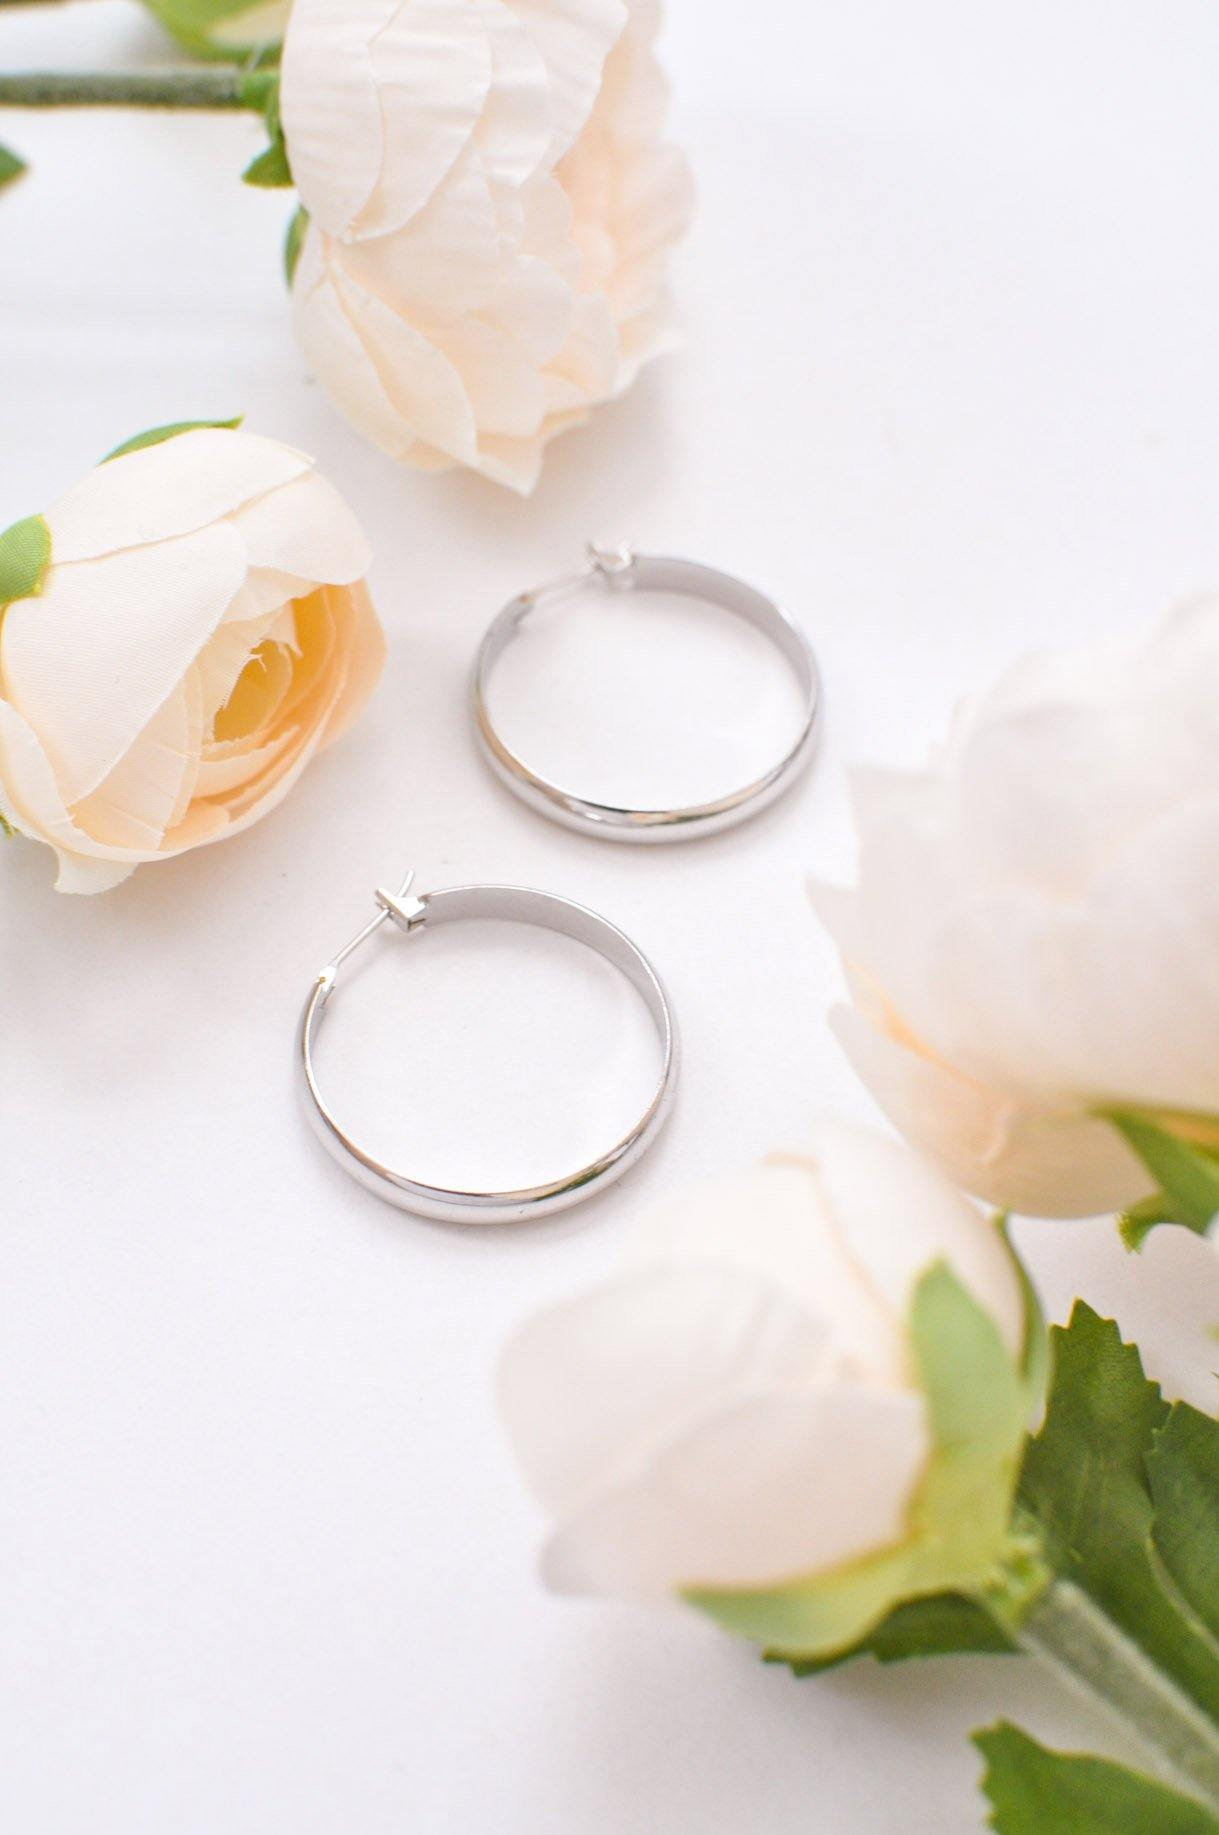 Vintage Classic Silver Pierced Hoop Earrings from Sweet and Spark.